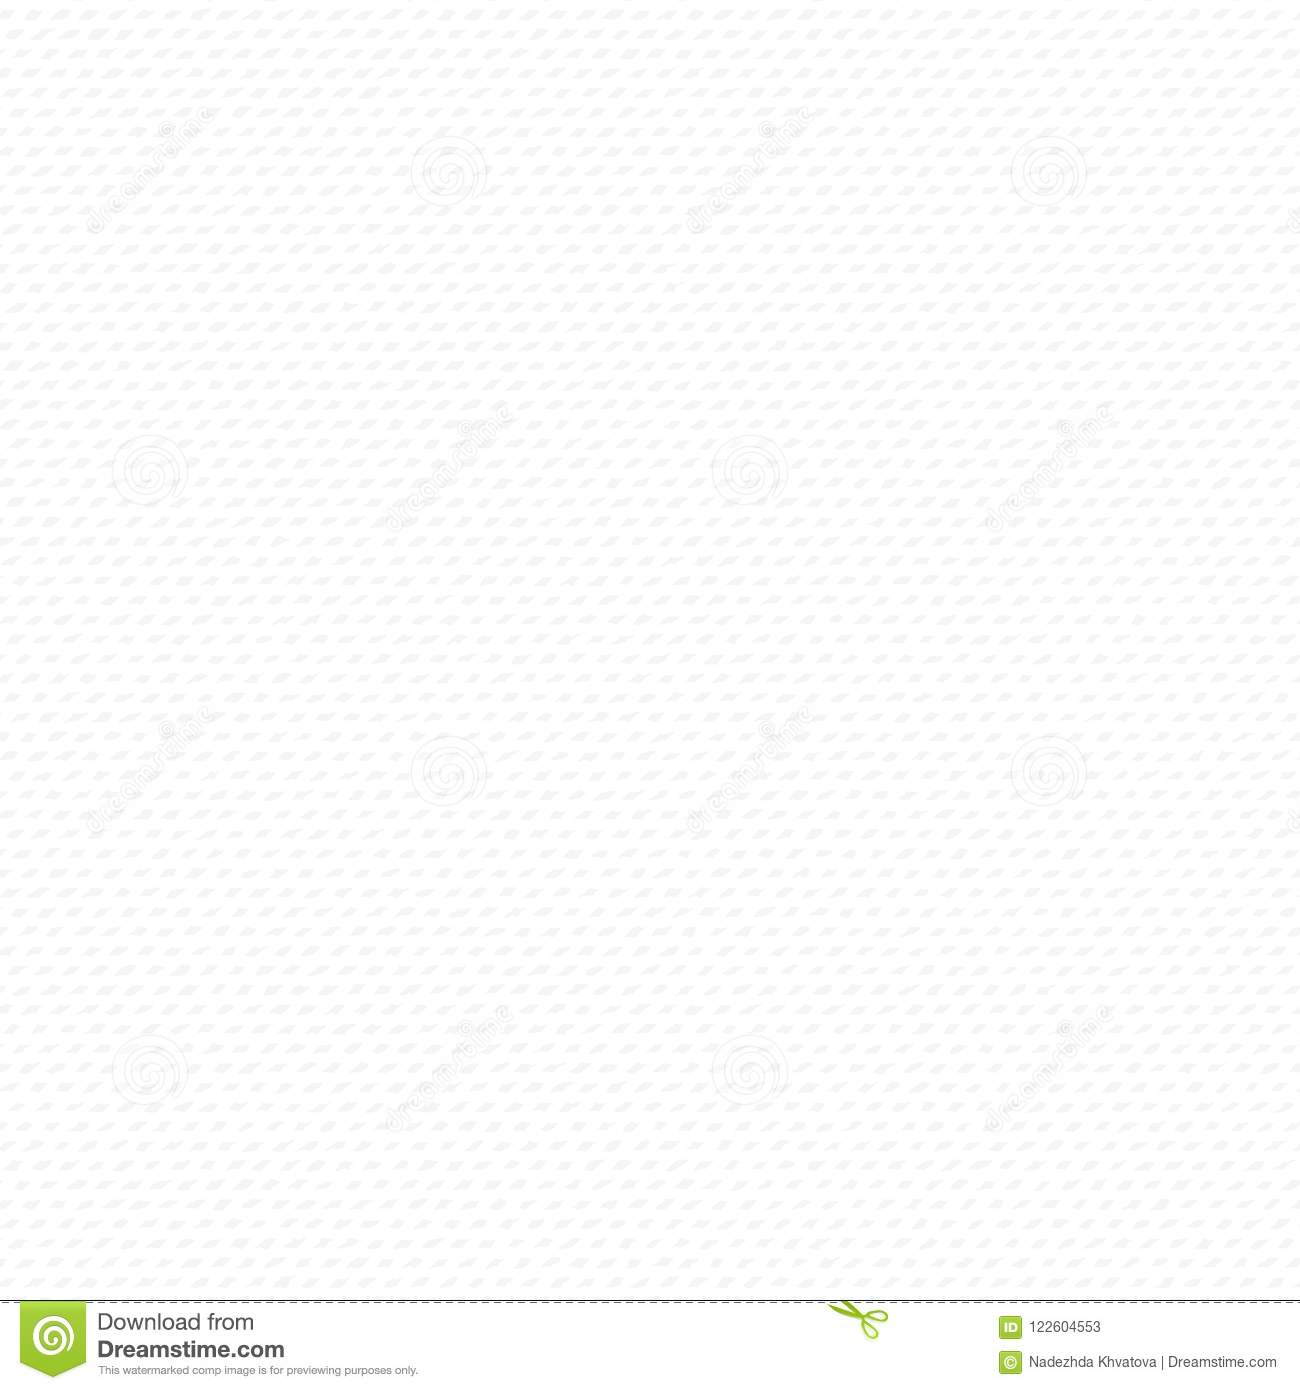 White Fabric Pattern Light Textured Paper Background Bright Backdrop Soft Textile Texture Natural Material Wallpaper Stock Vector Illustration Of Light Noisy 122604553